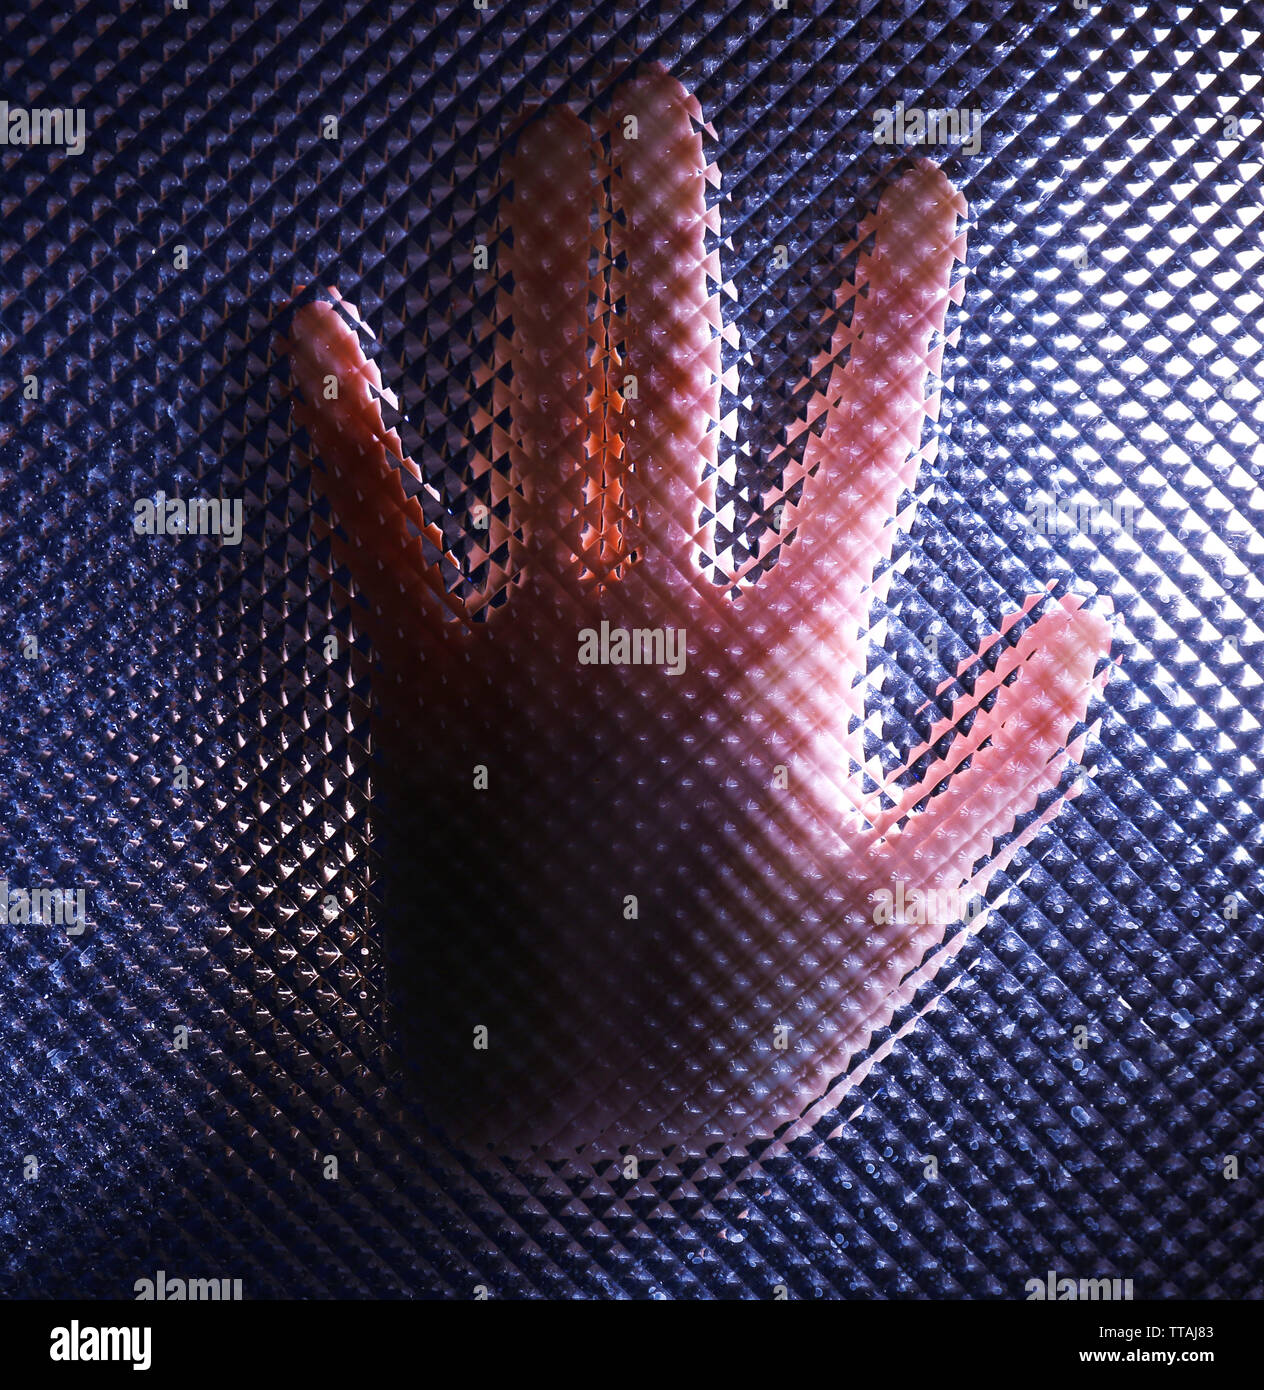 Female hand behind frosted glass, close-up - Stock Image